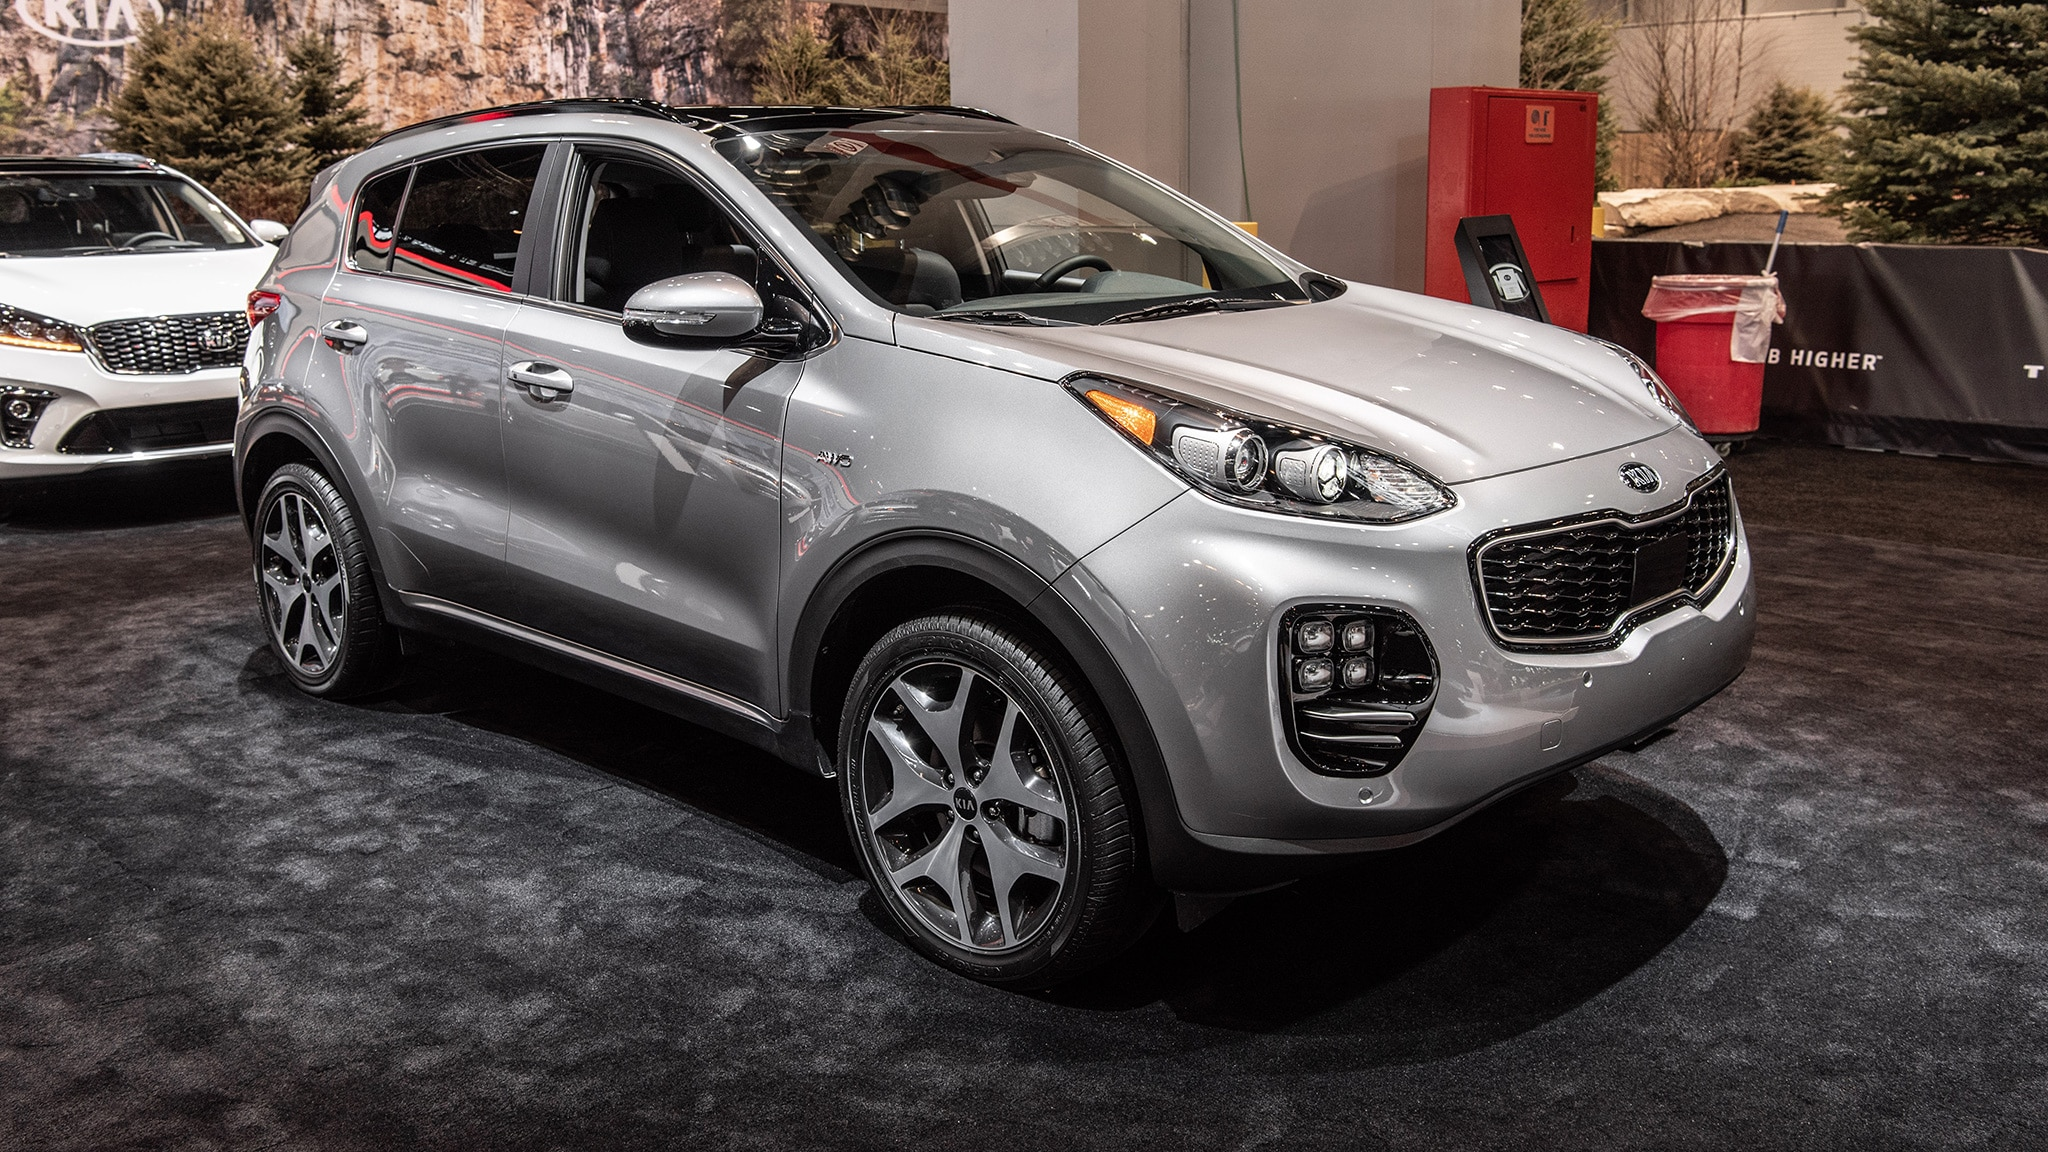 2020 Kia Sportage At Chicago Auto Show 01